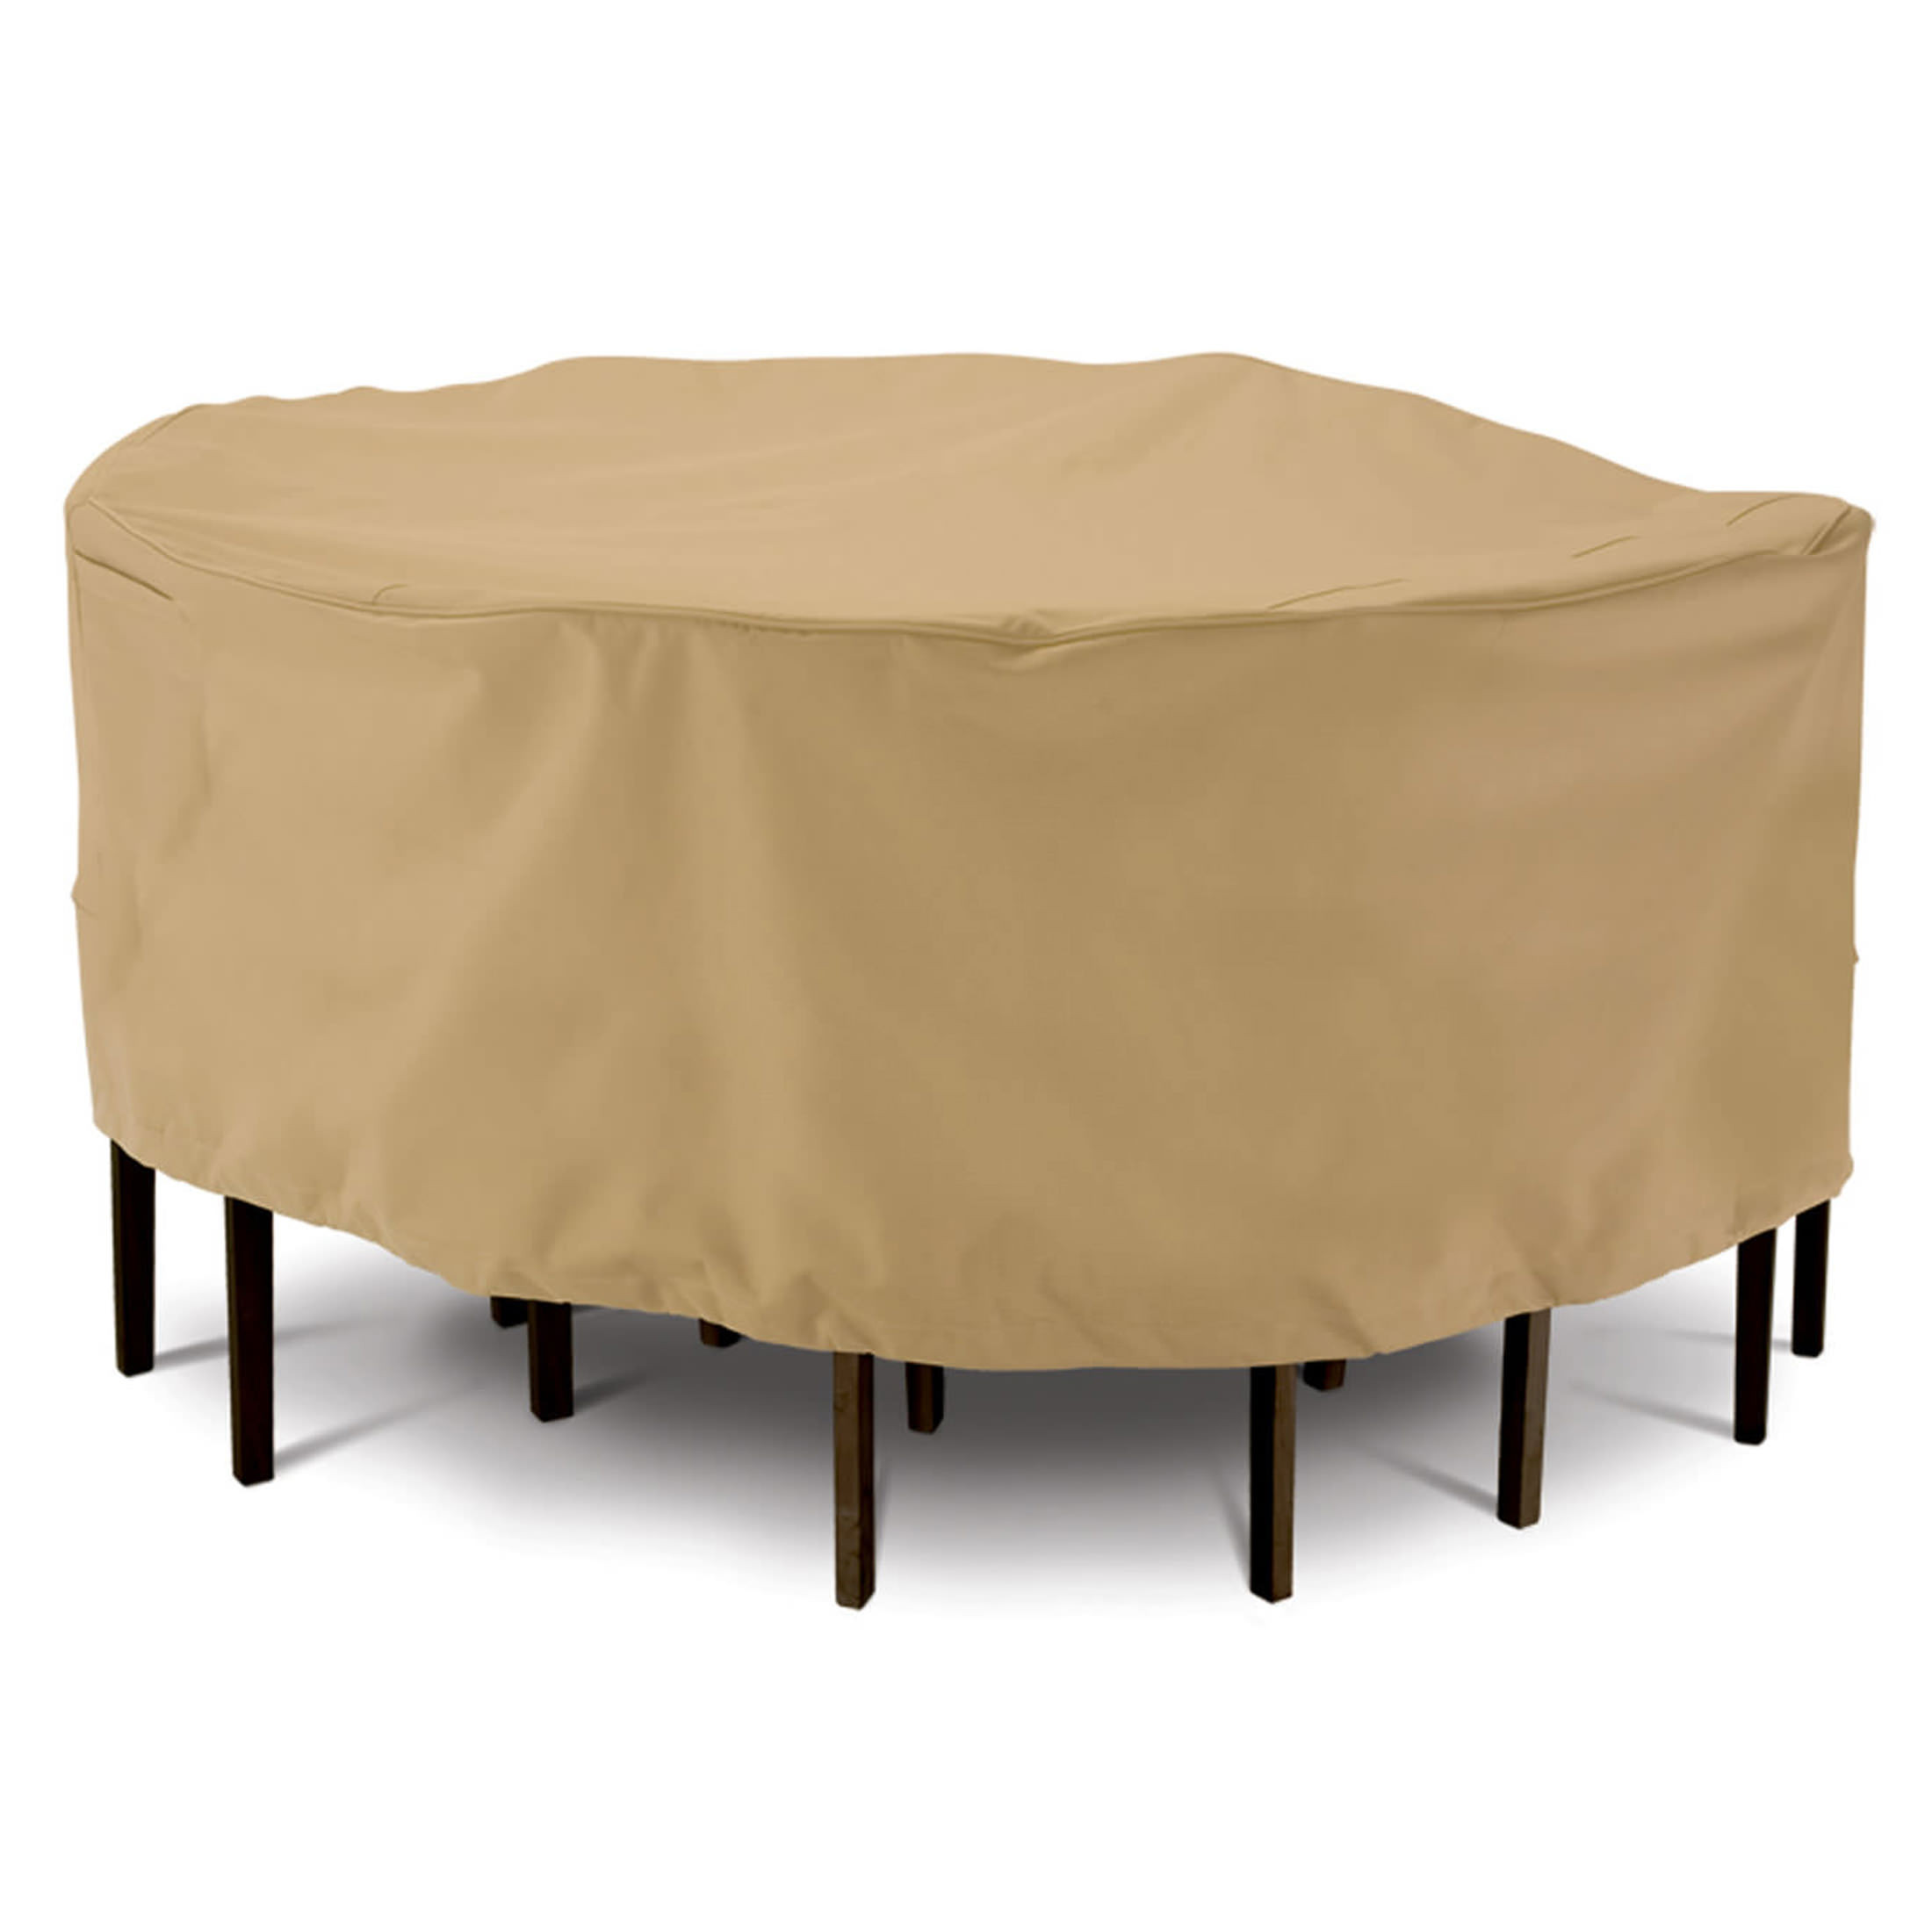 Classic Accessories Terrazzo Large Round Sand Table and Chair Set Cover